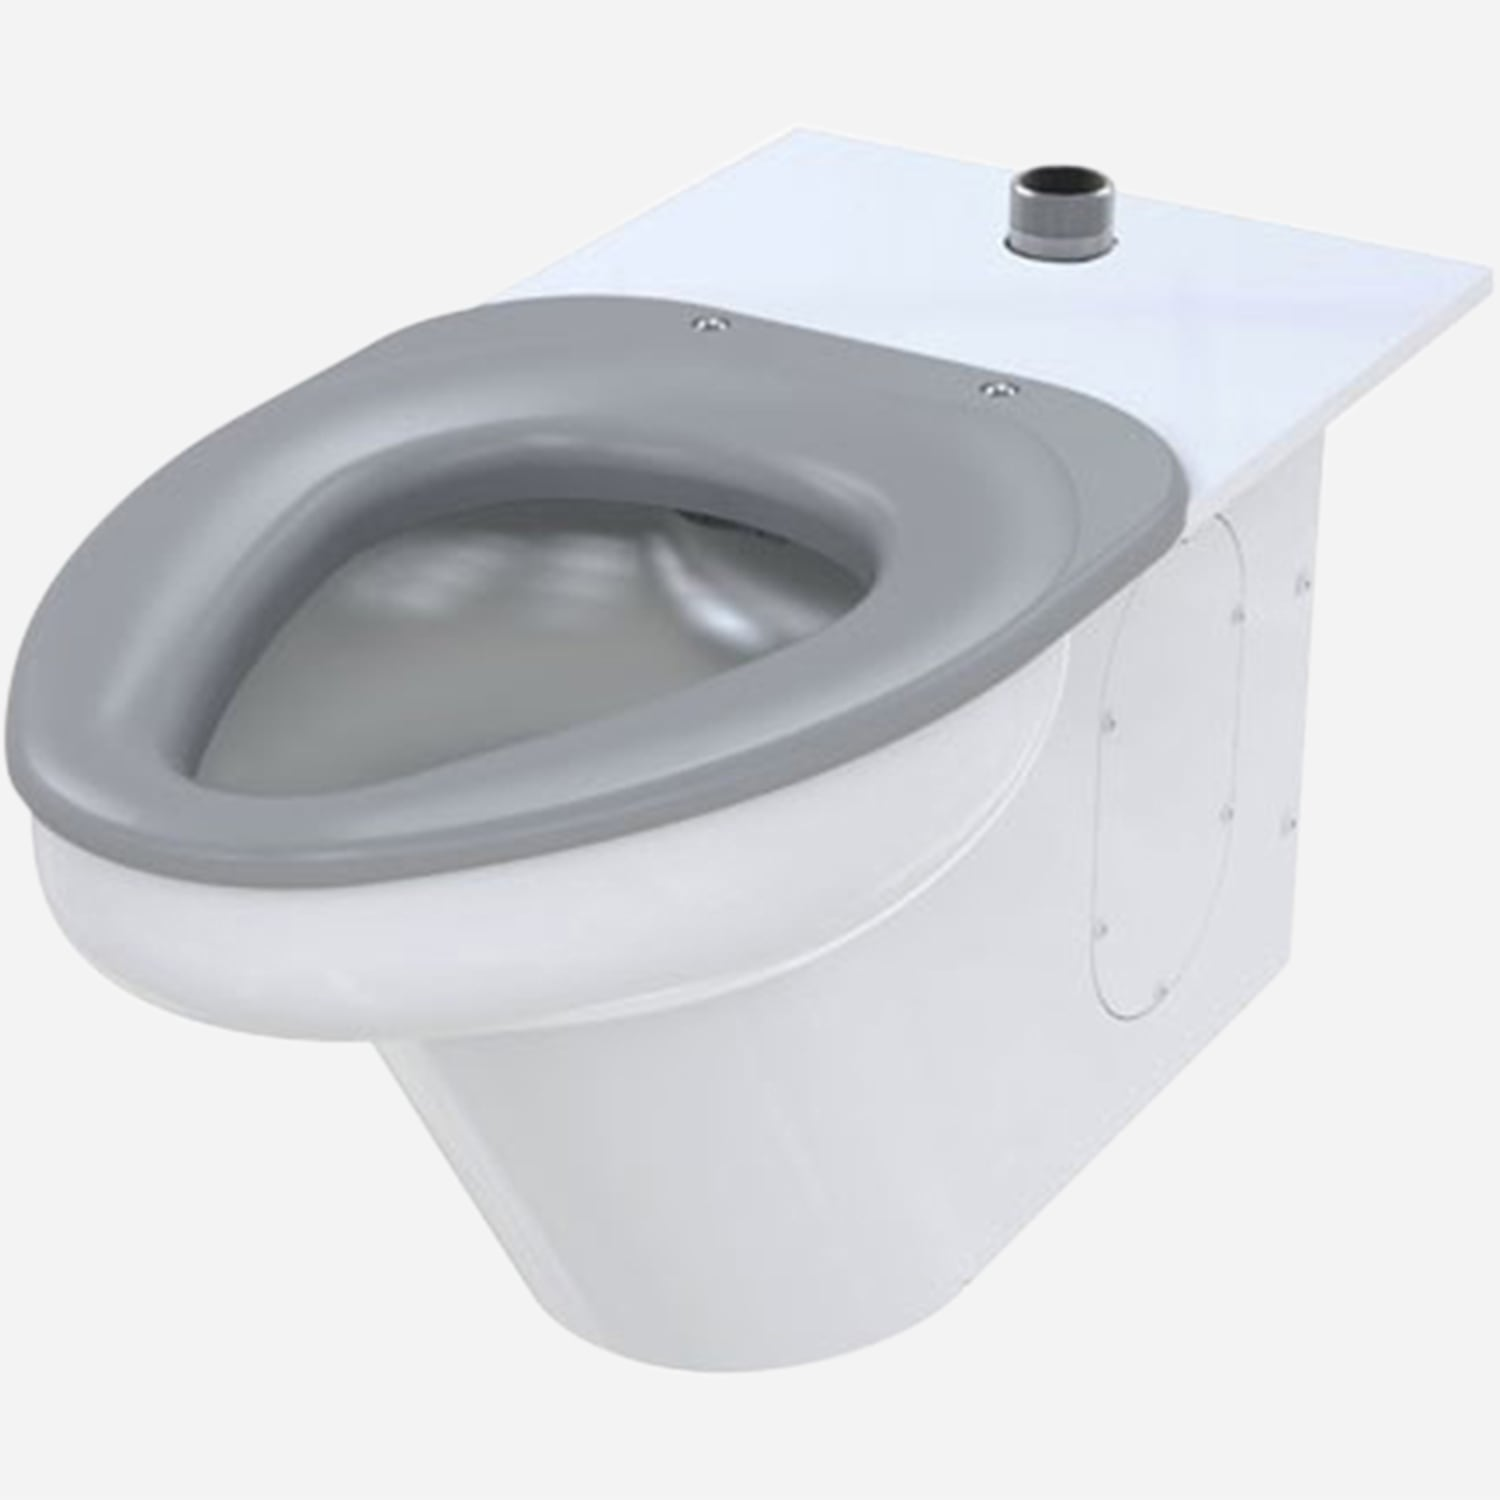 BestCare Stainless Steel Ligature-Resistant Toilet